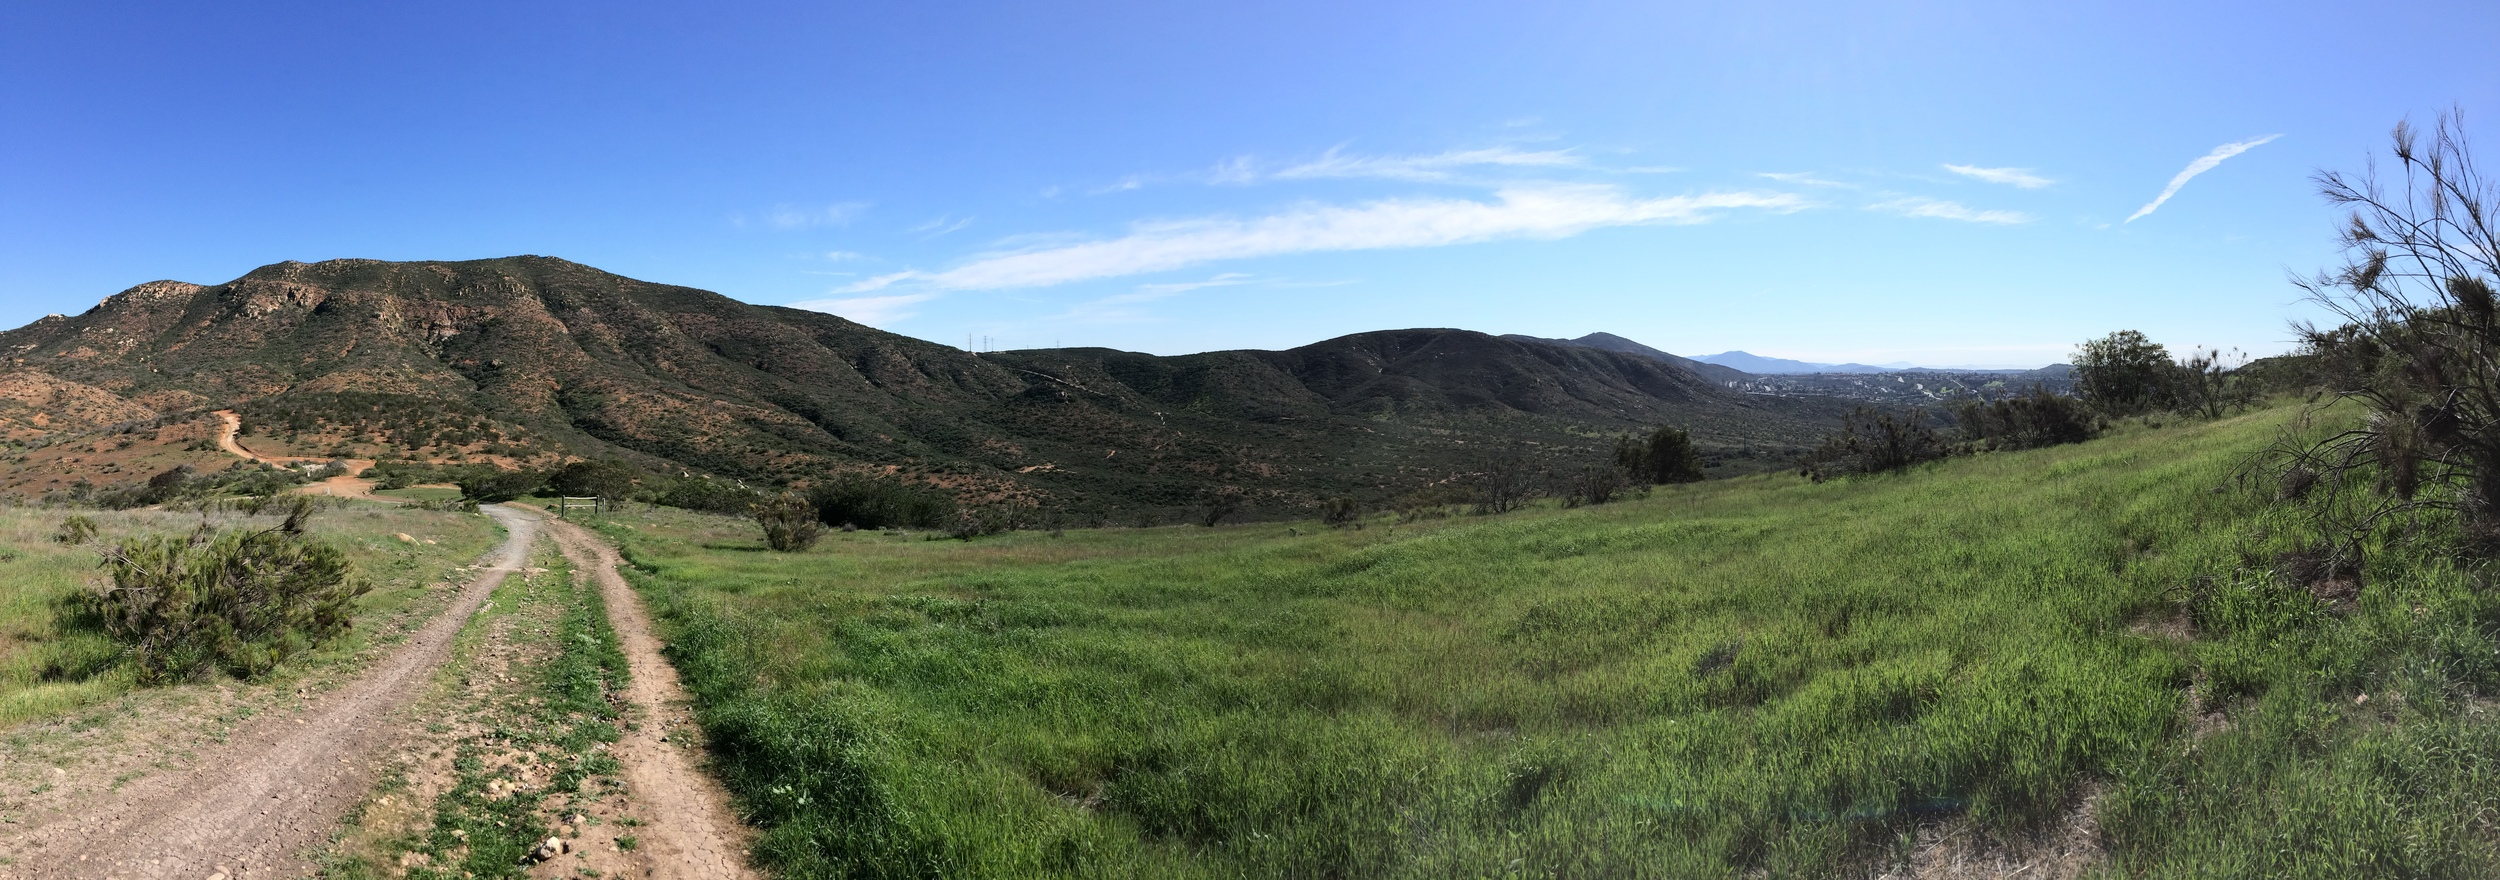 Descending into Suycott Valley, North Fortuna Mountain, Mission Trails Regional Park